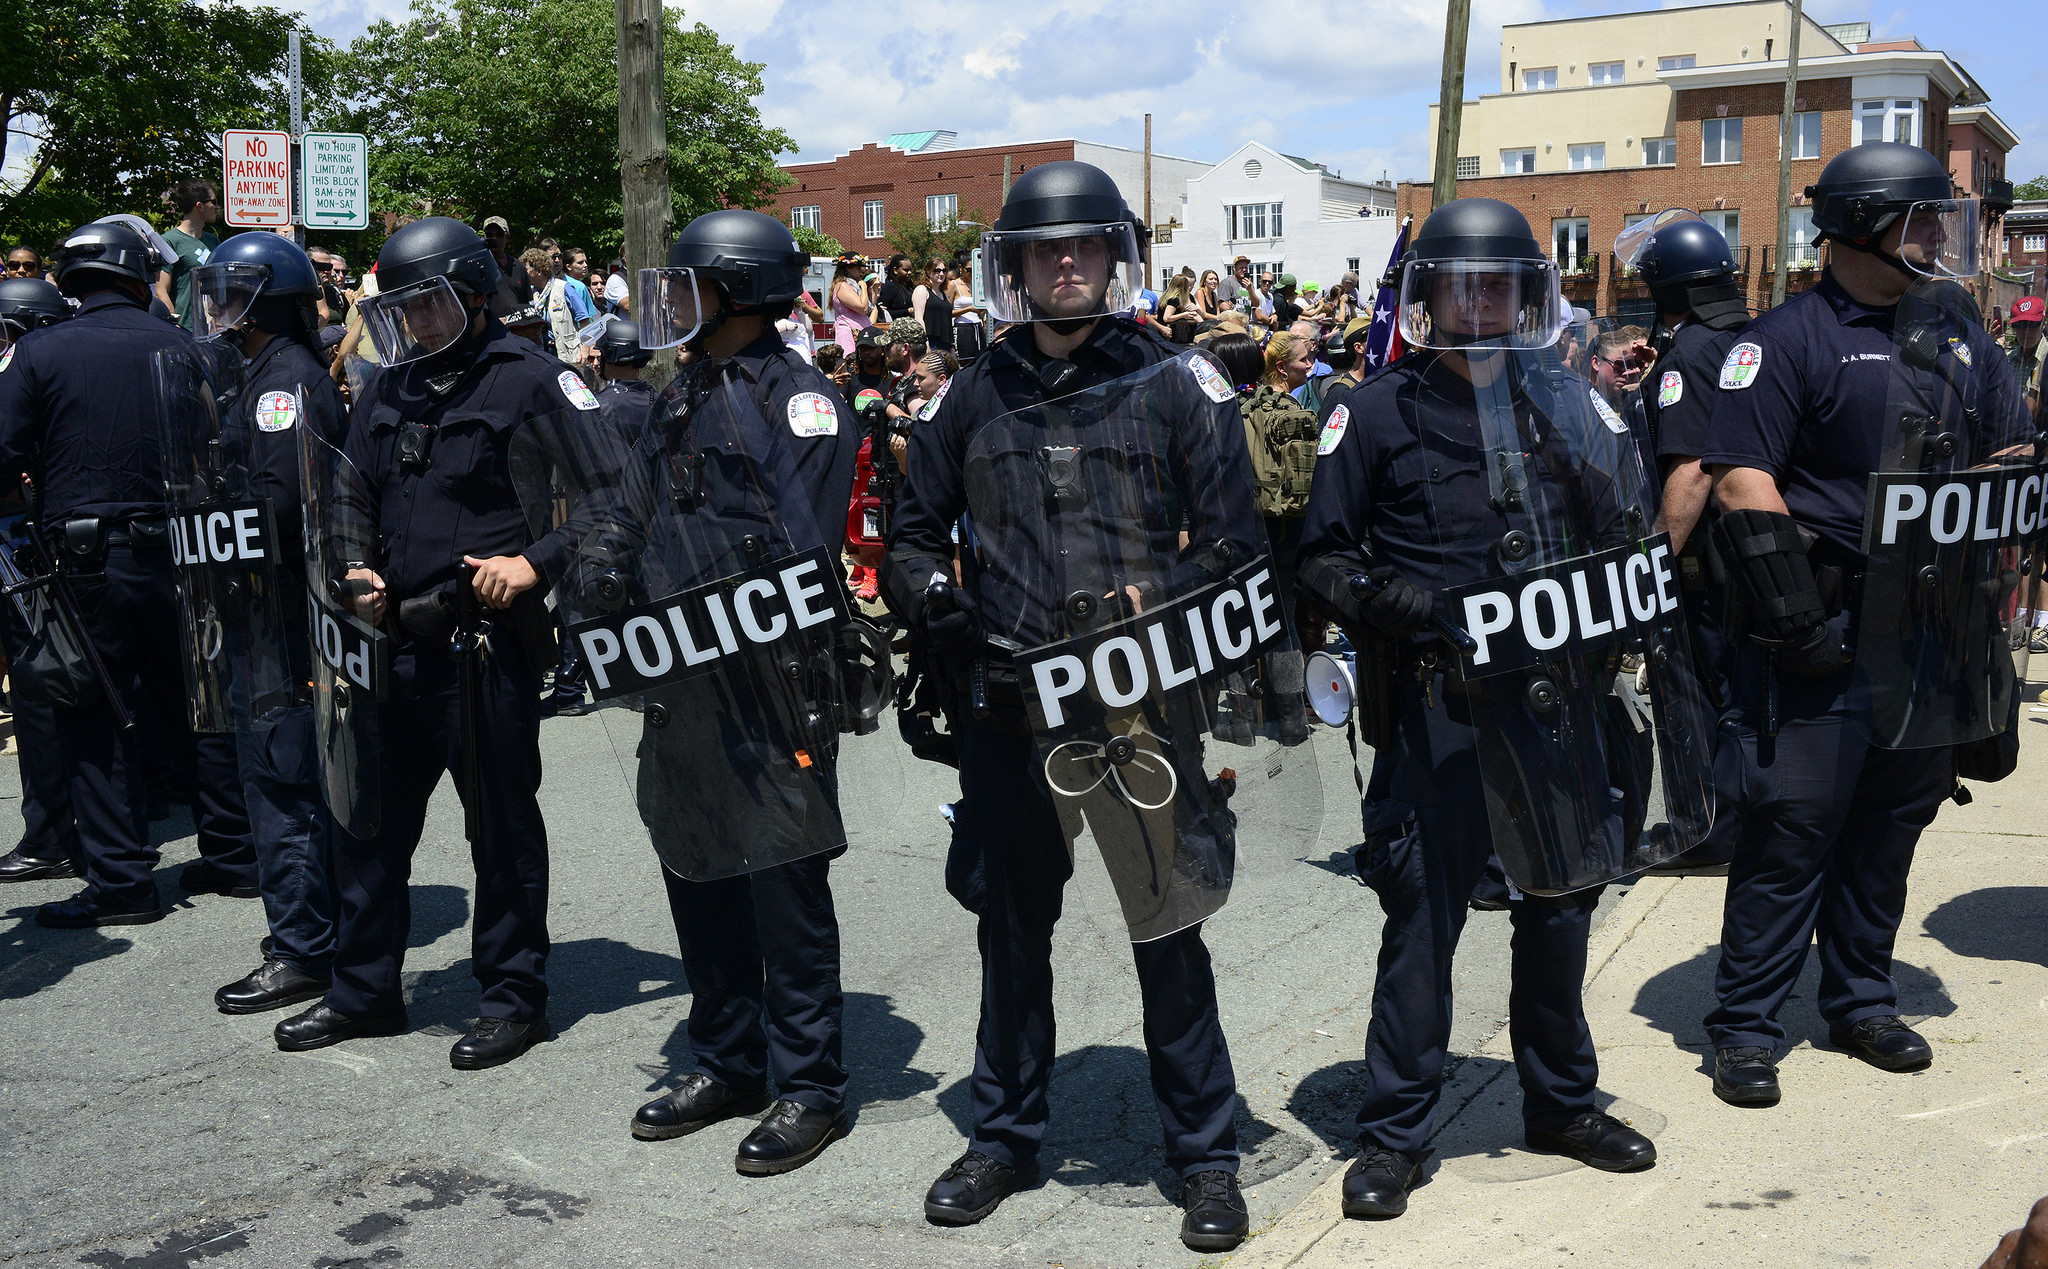 Emergency declared ahead of Charlottesville anniversary